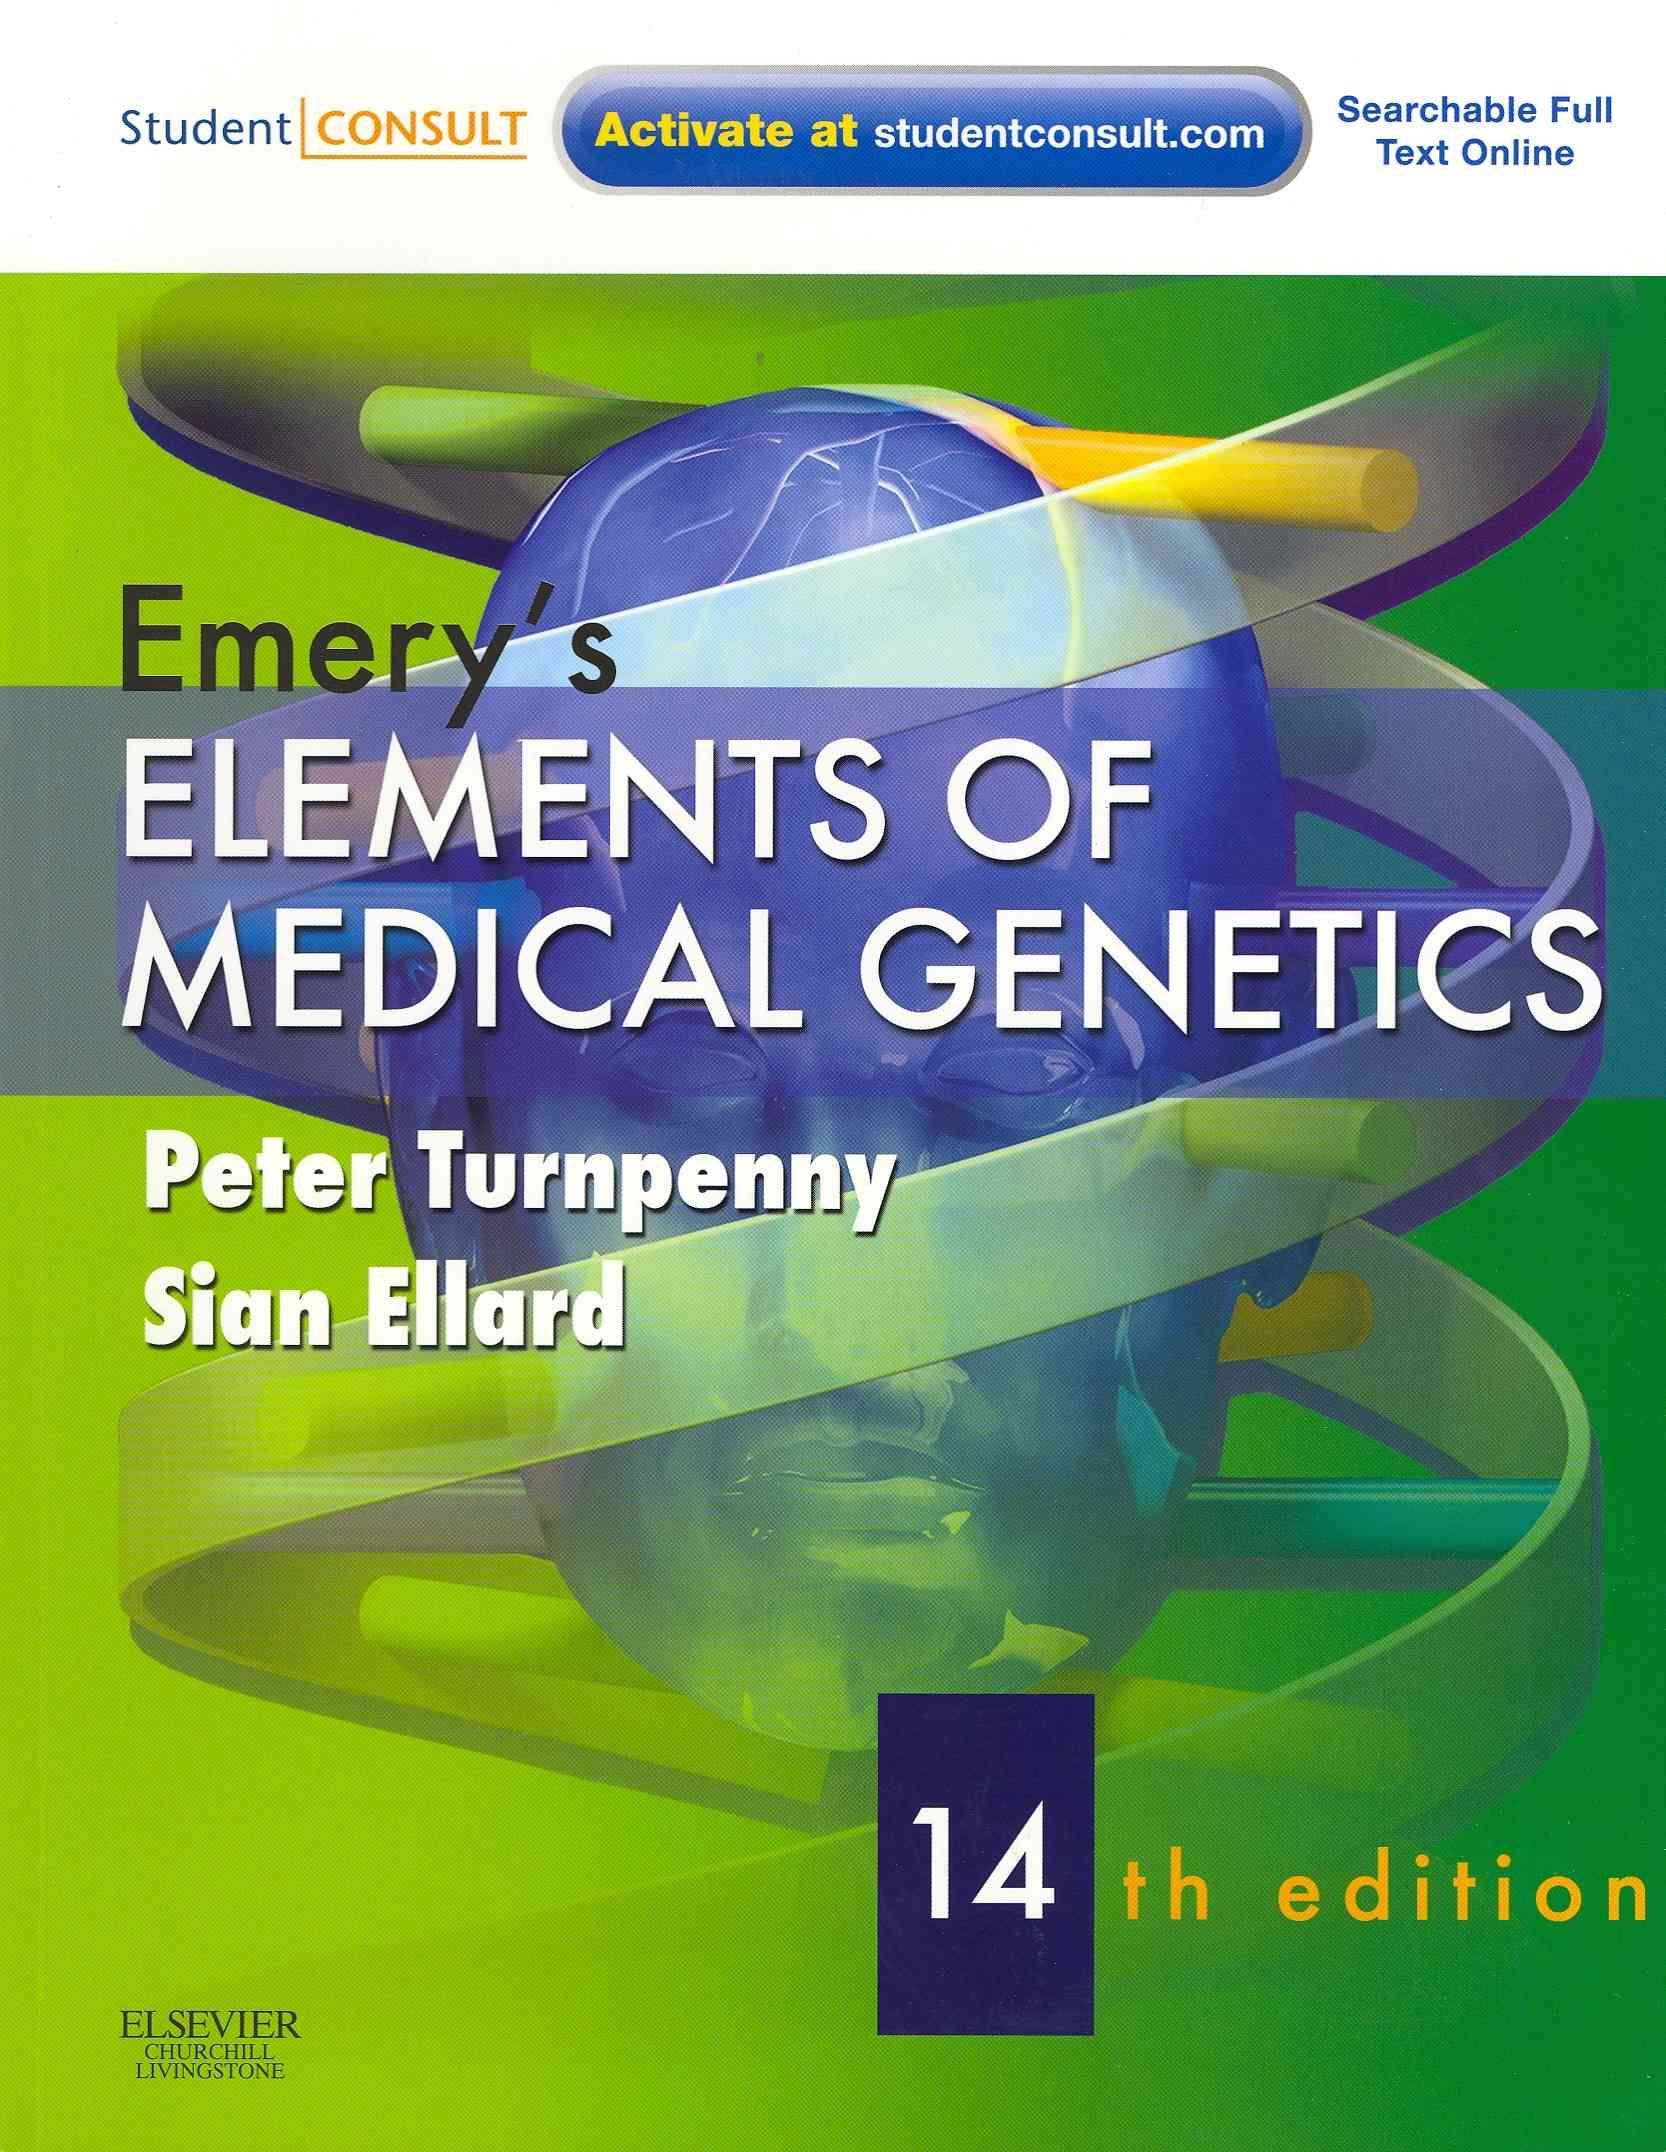 Emerys elements of medical genetics products pinterest emerys elements of medical genetics fandeluxe Images